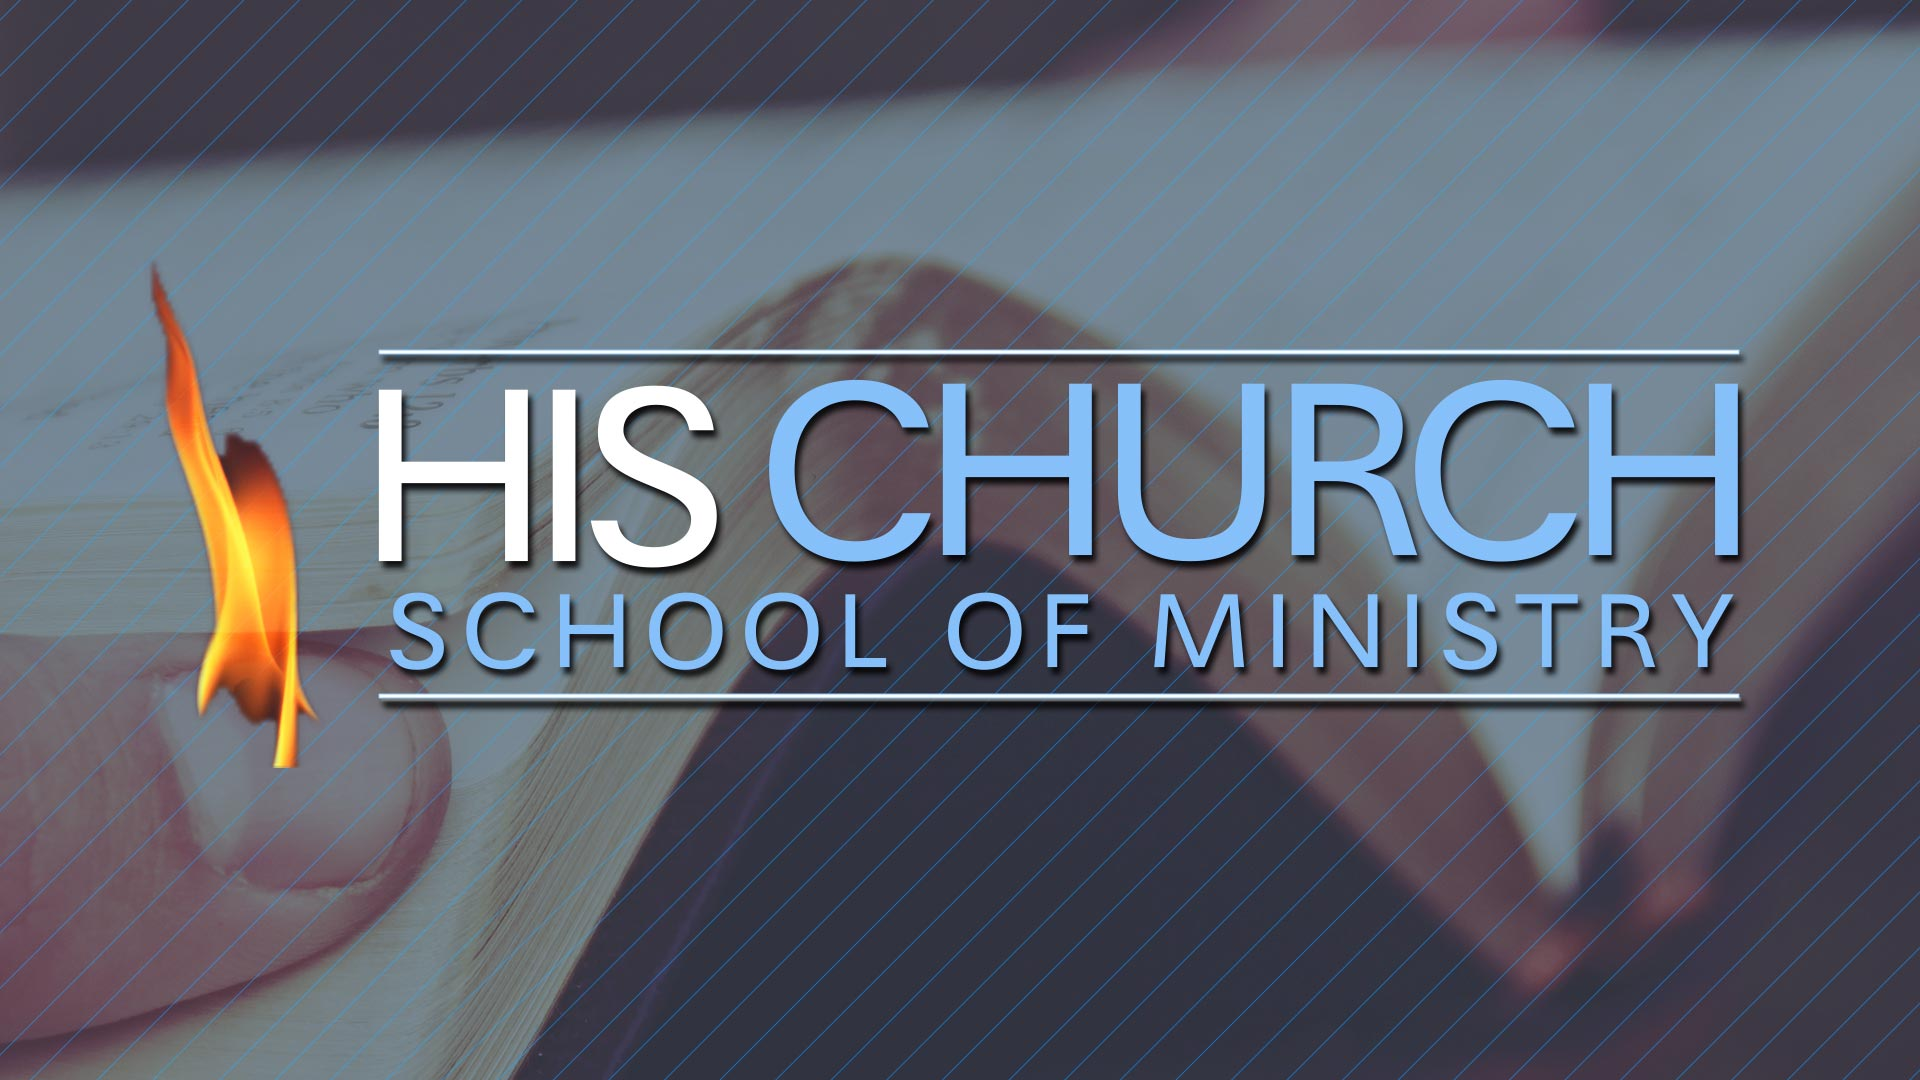 School of Ministry NOW OPEN! Online classes available.